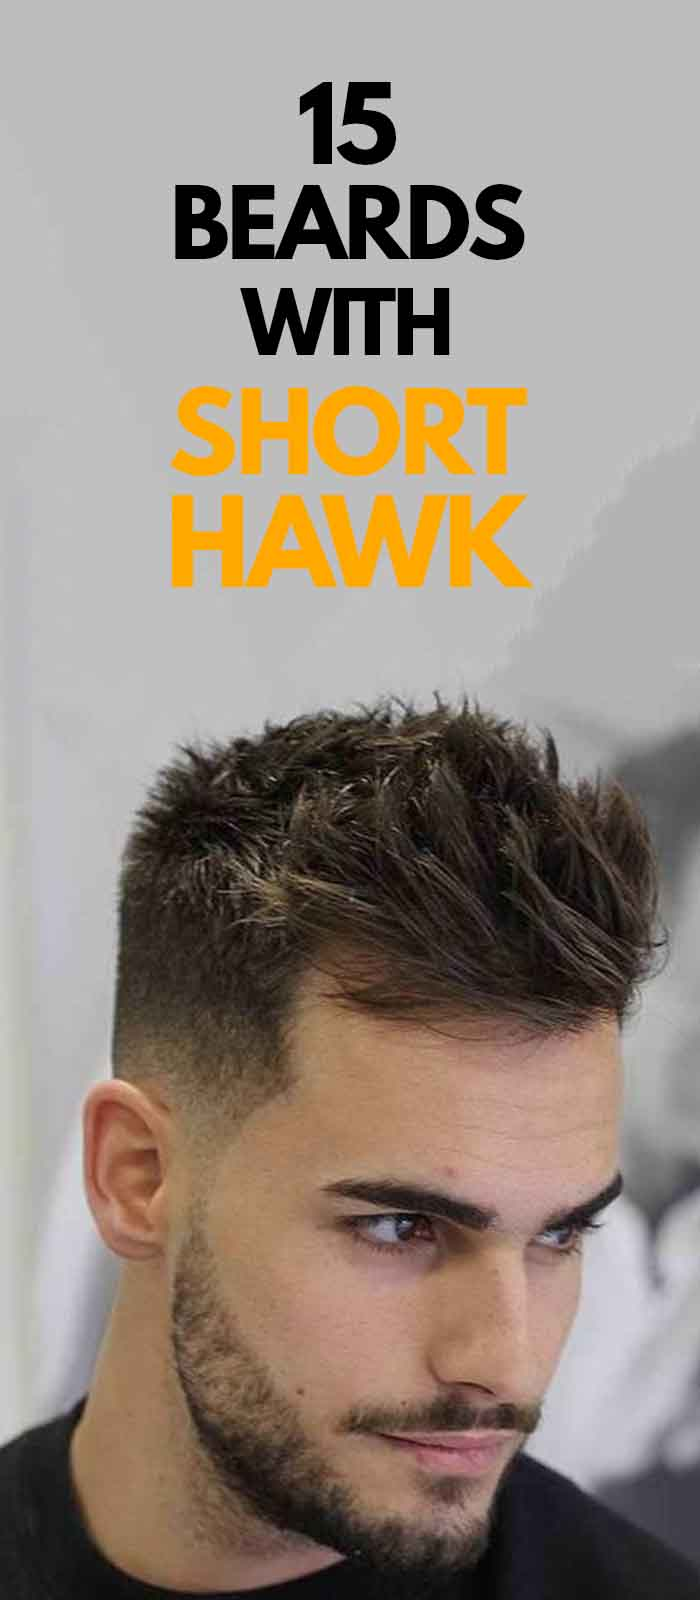 Short Faux Hawk hairstyle and beard for men!